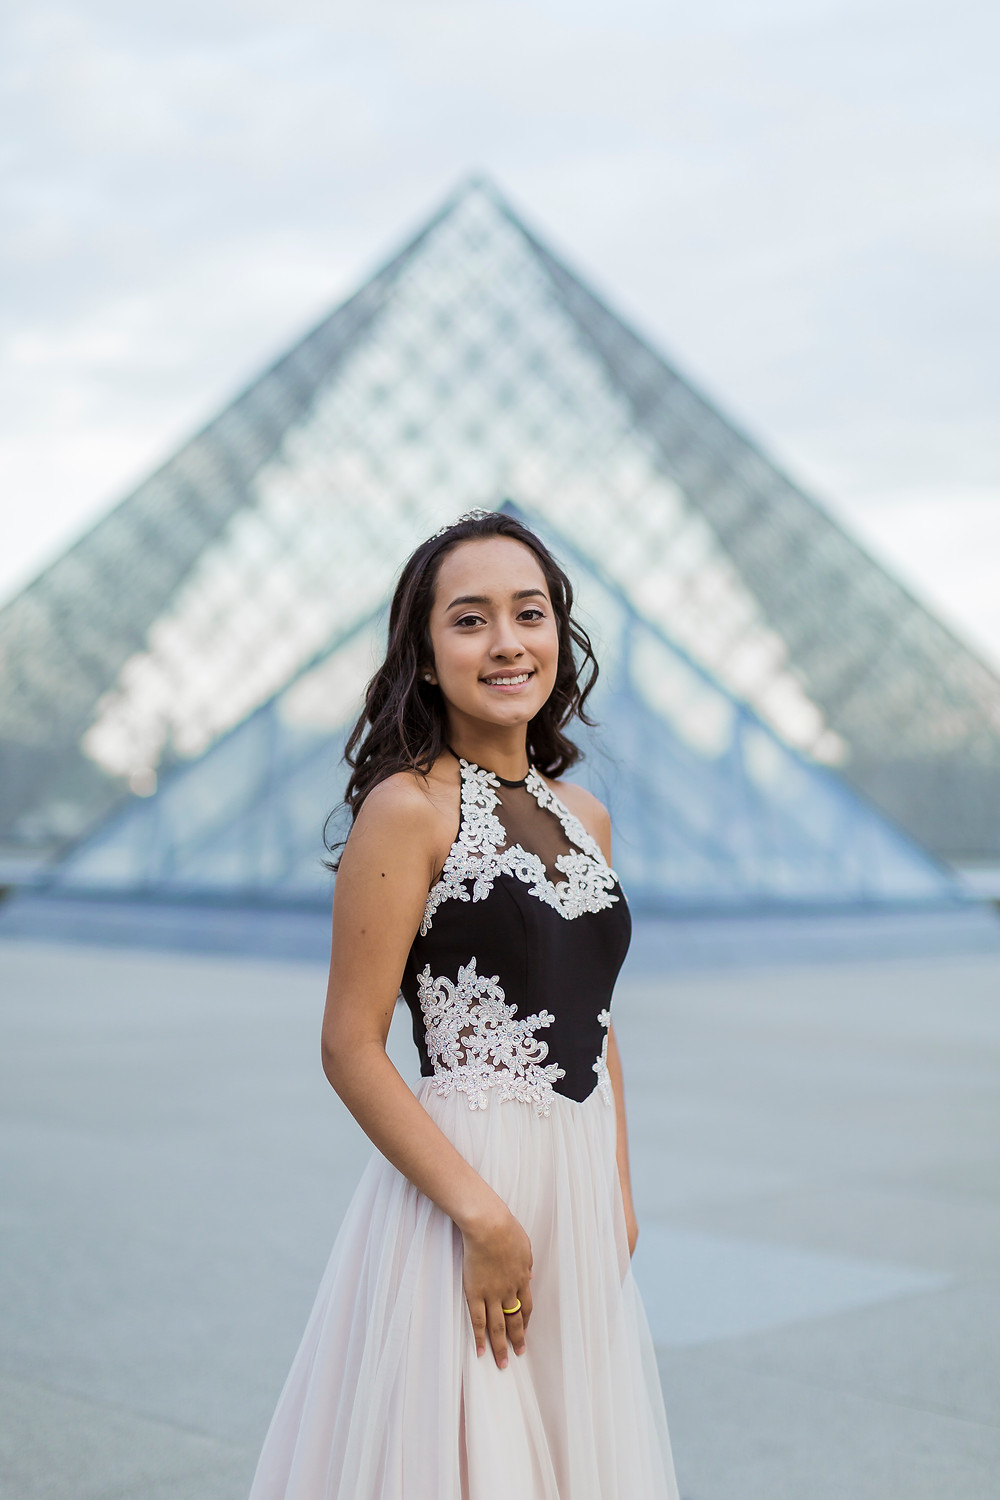 louvre museum girl portrait photos